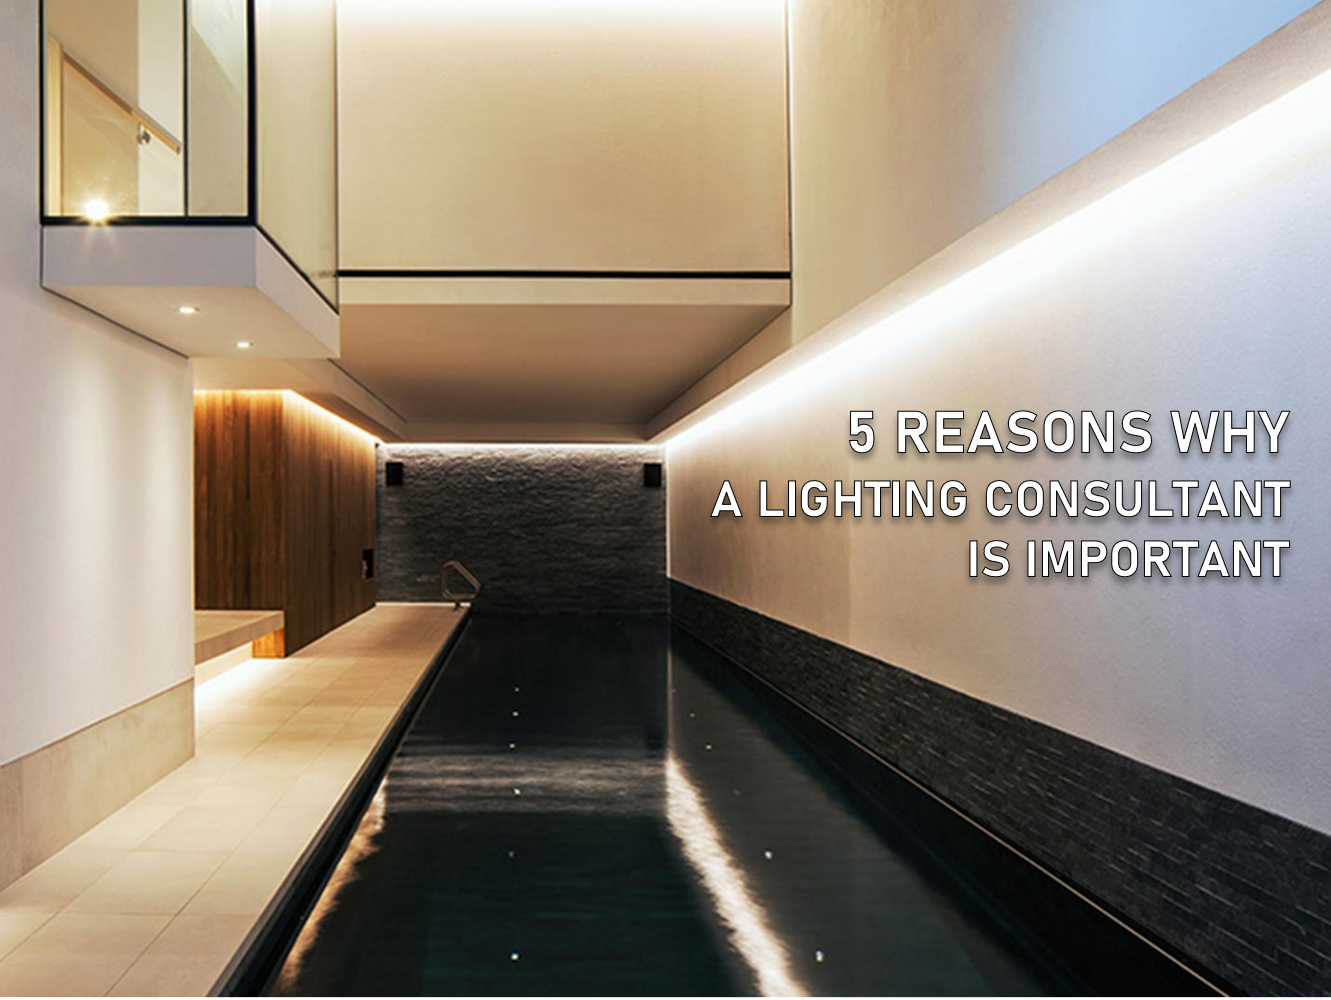 5 Reasons Why A Lighting Consultant Is Important